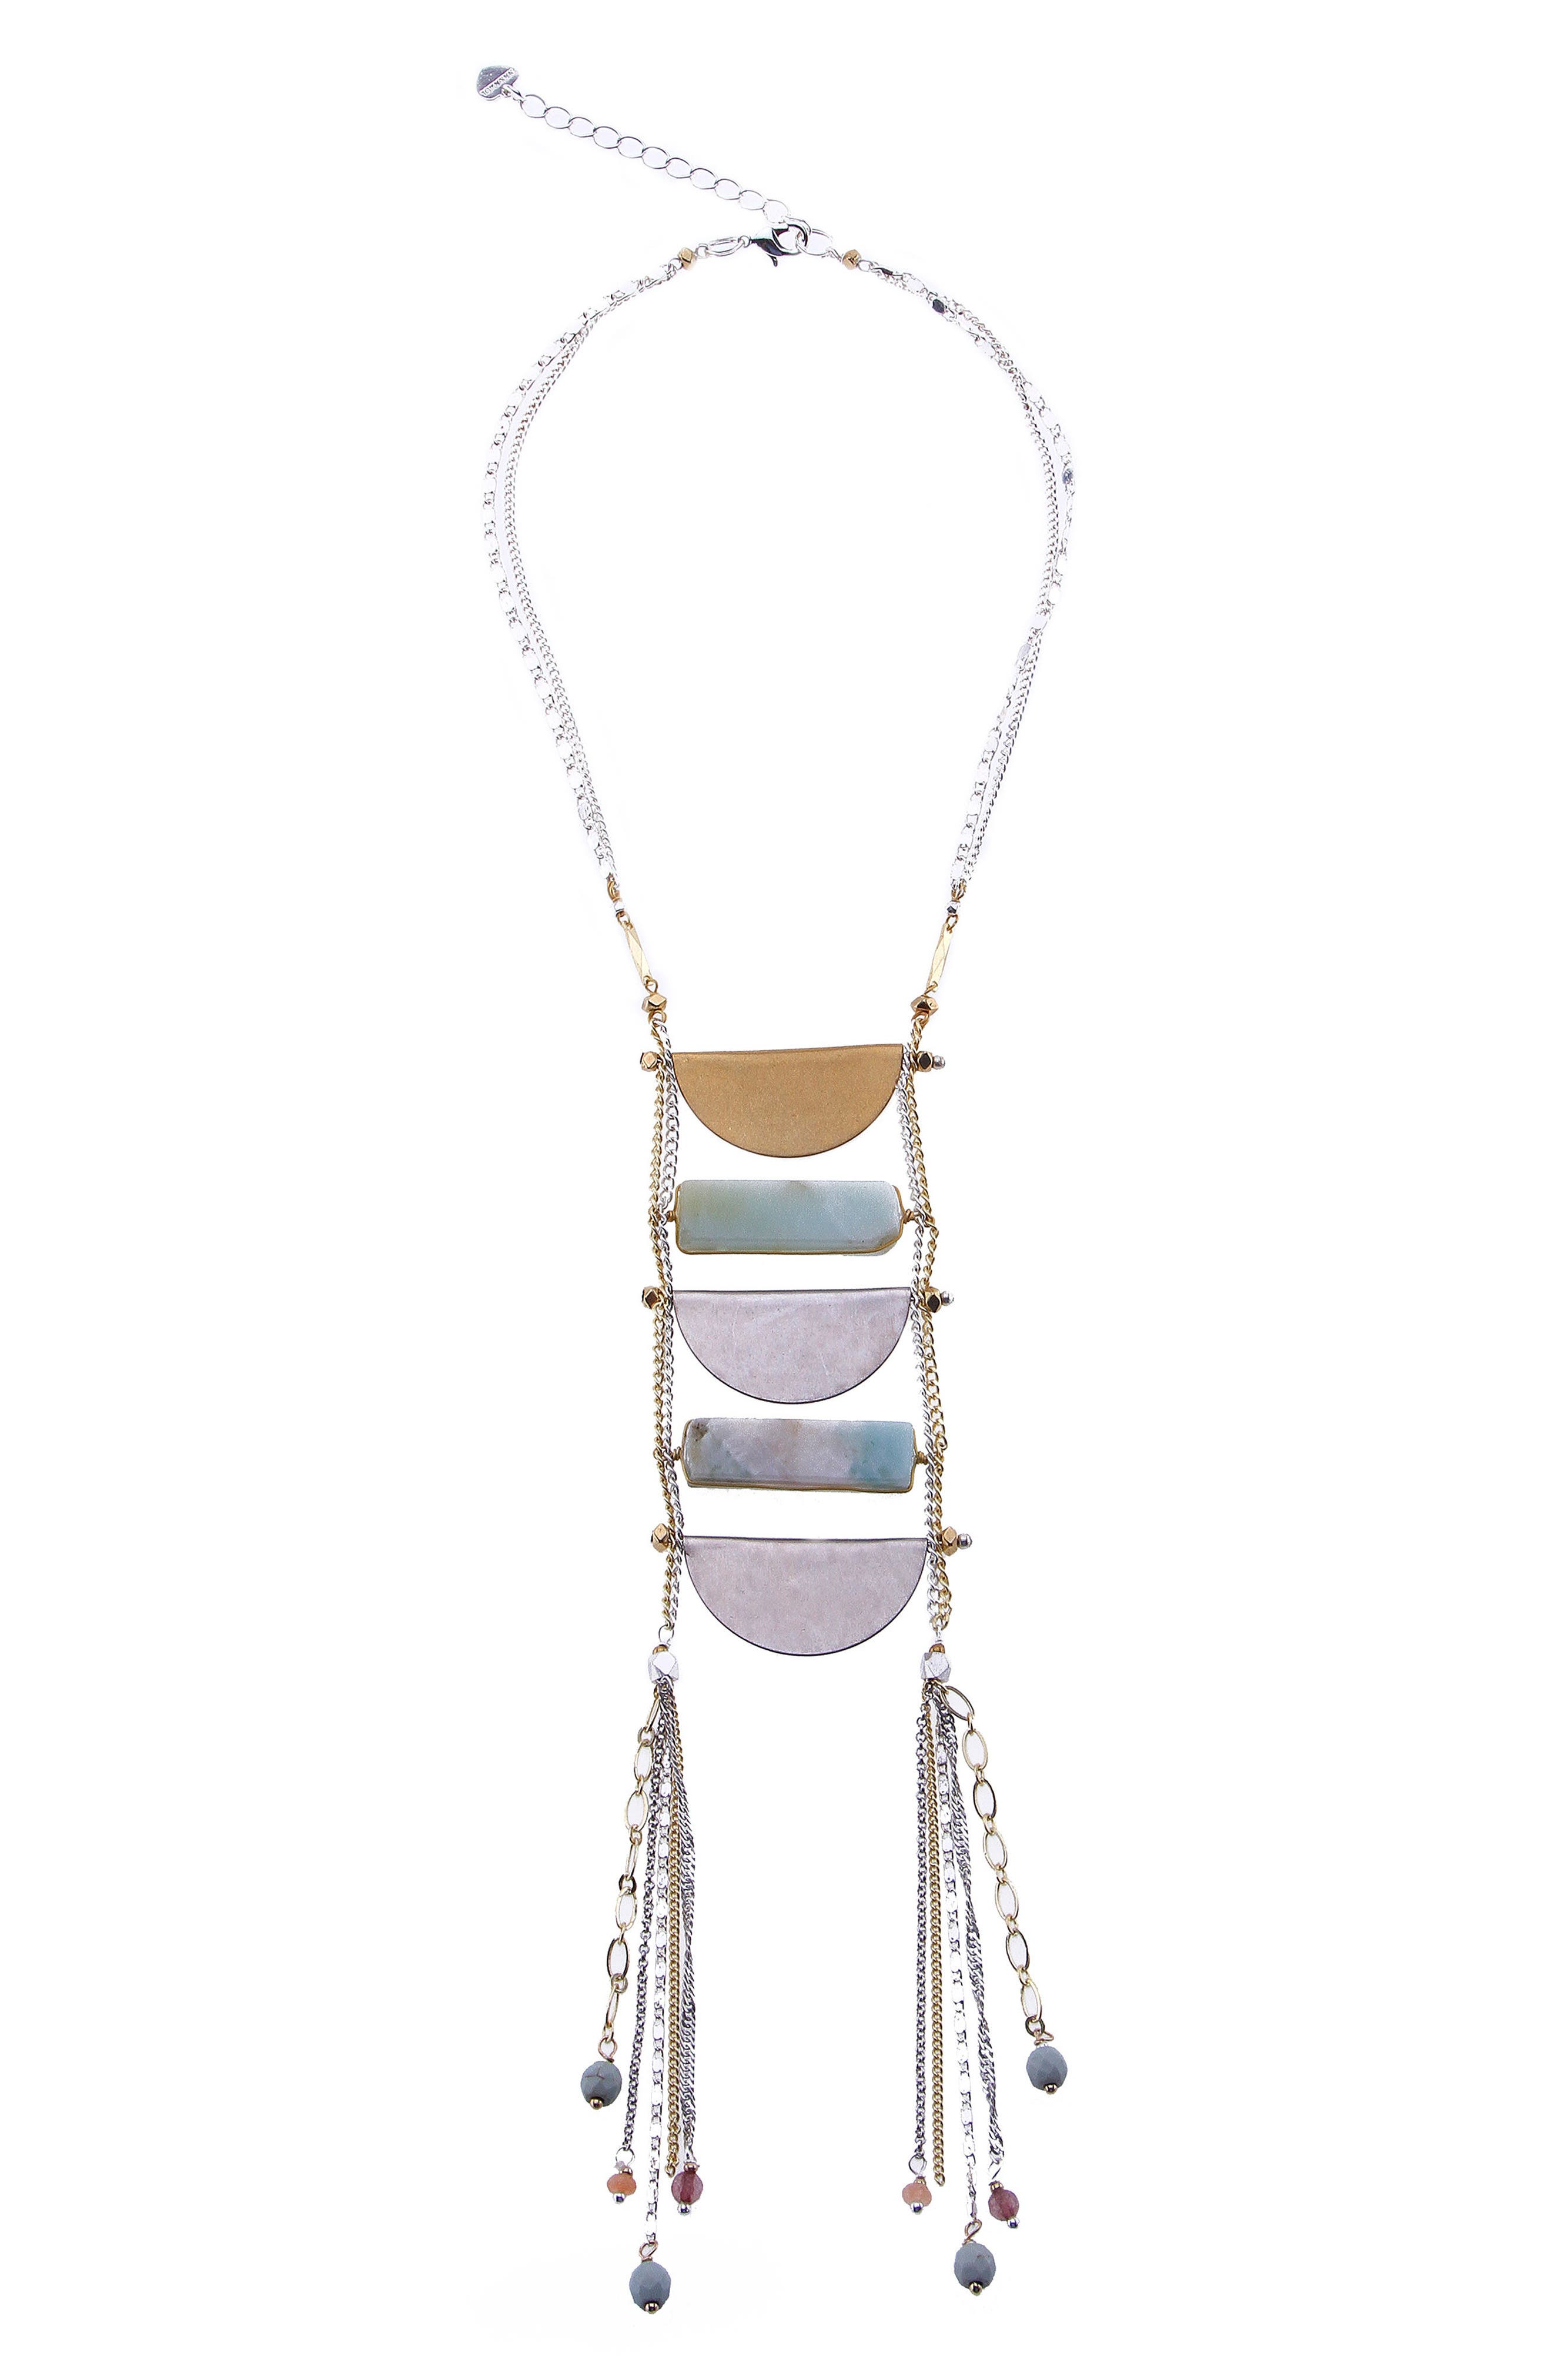 Lily Amazonite Statement Necklace,                             Main thumbnail 1, color,                             Aqua